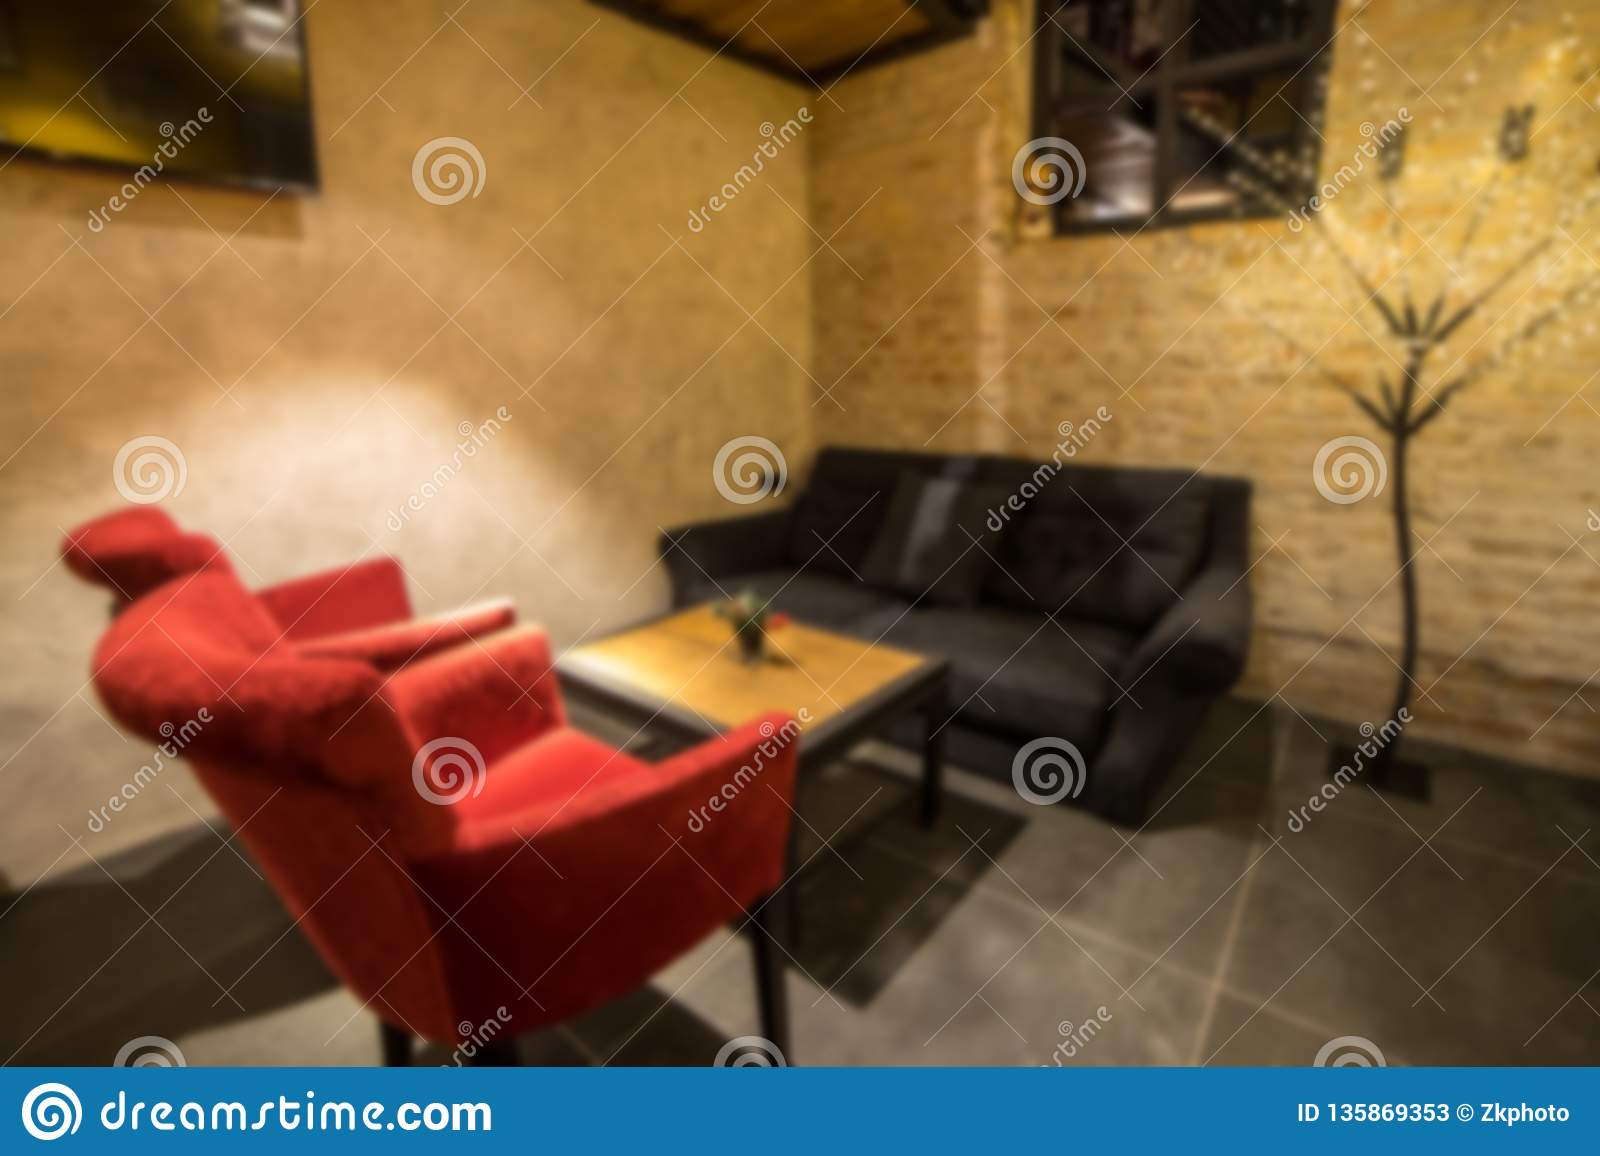 Blurred Modern Coffee Shop For Use As Background Cafe Restaurant Interior Stock Image Image Of People Retail 135869353